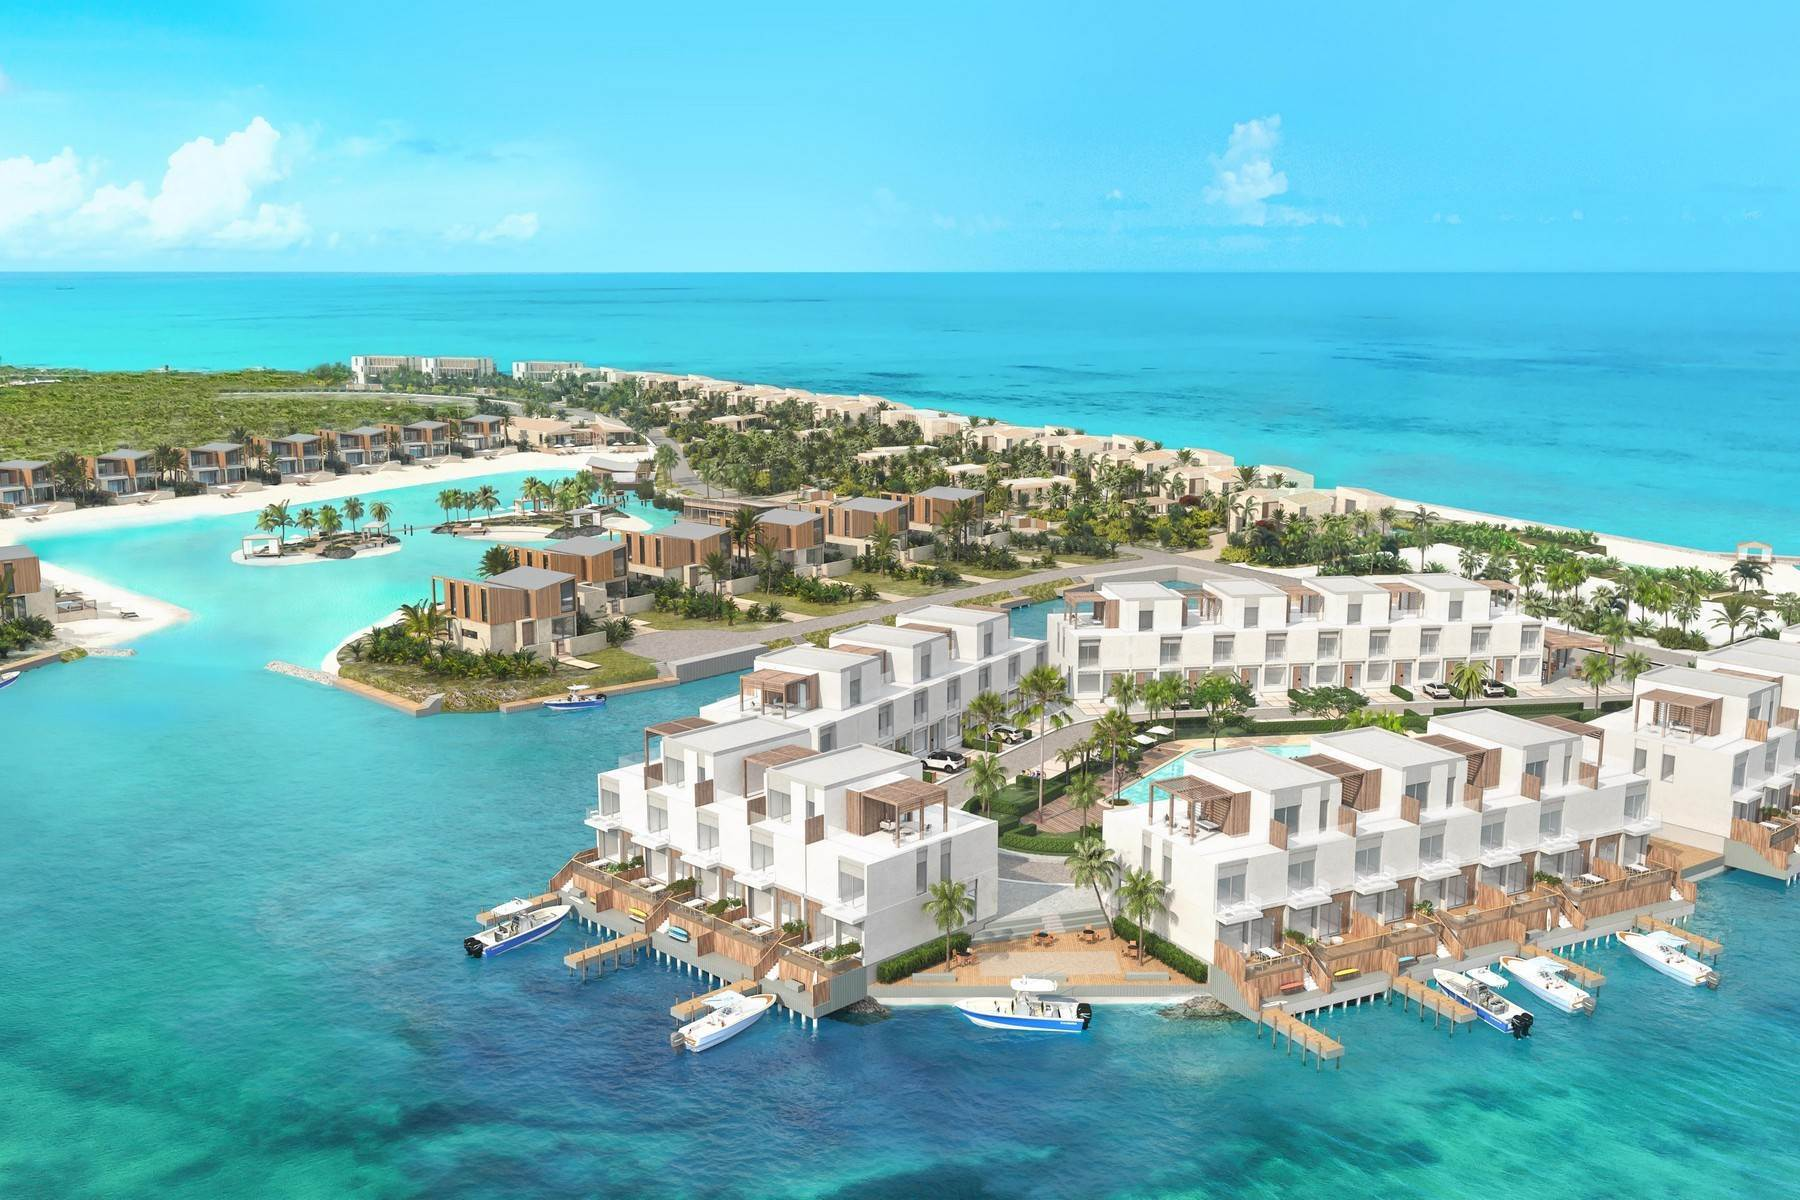 11. Single Family Homes for Sale at SOUTH BANK - THE LAGOON II - LAGOON VILLA 18 South Bank, Long Bay, Providenciales Turks And Caicos Islands